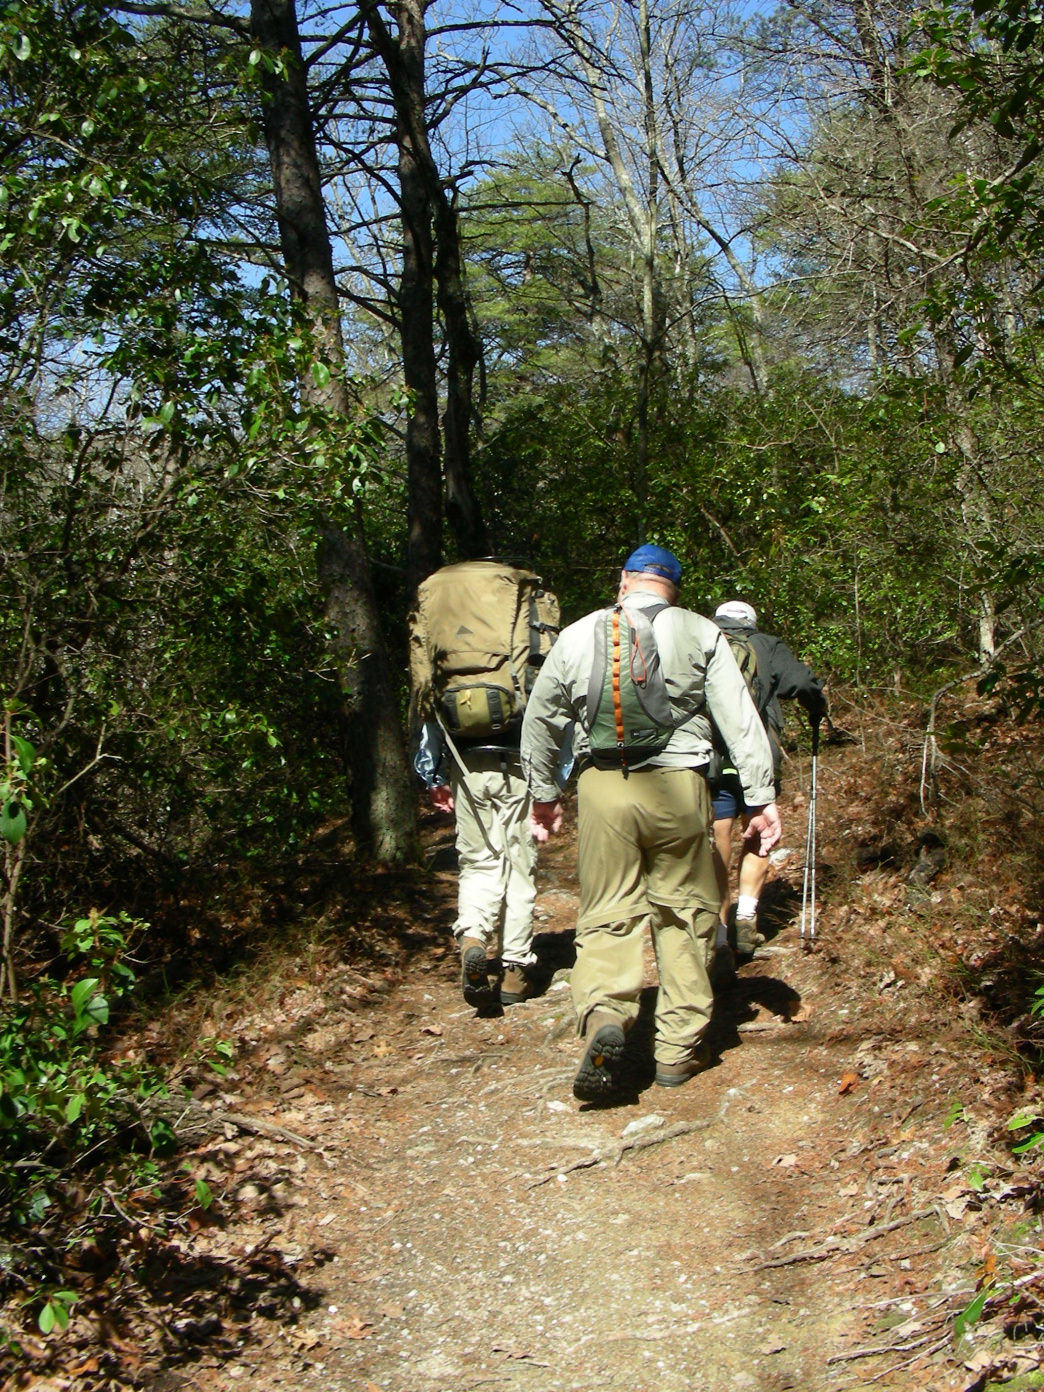 The Pinhoti Trail connects the Appalachian Trail to the southern Appalachians of Alabama.